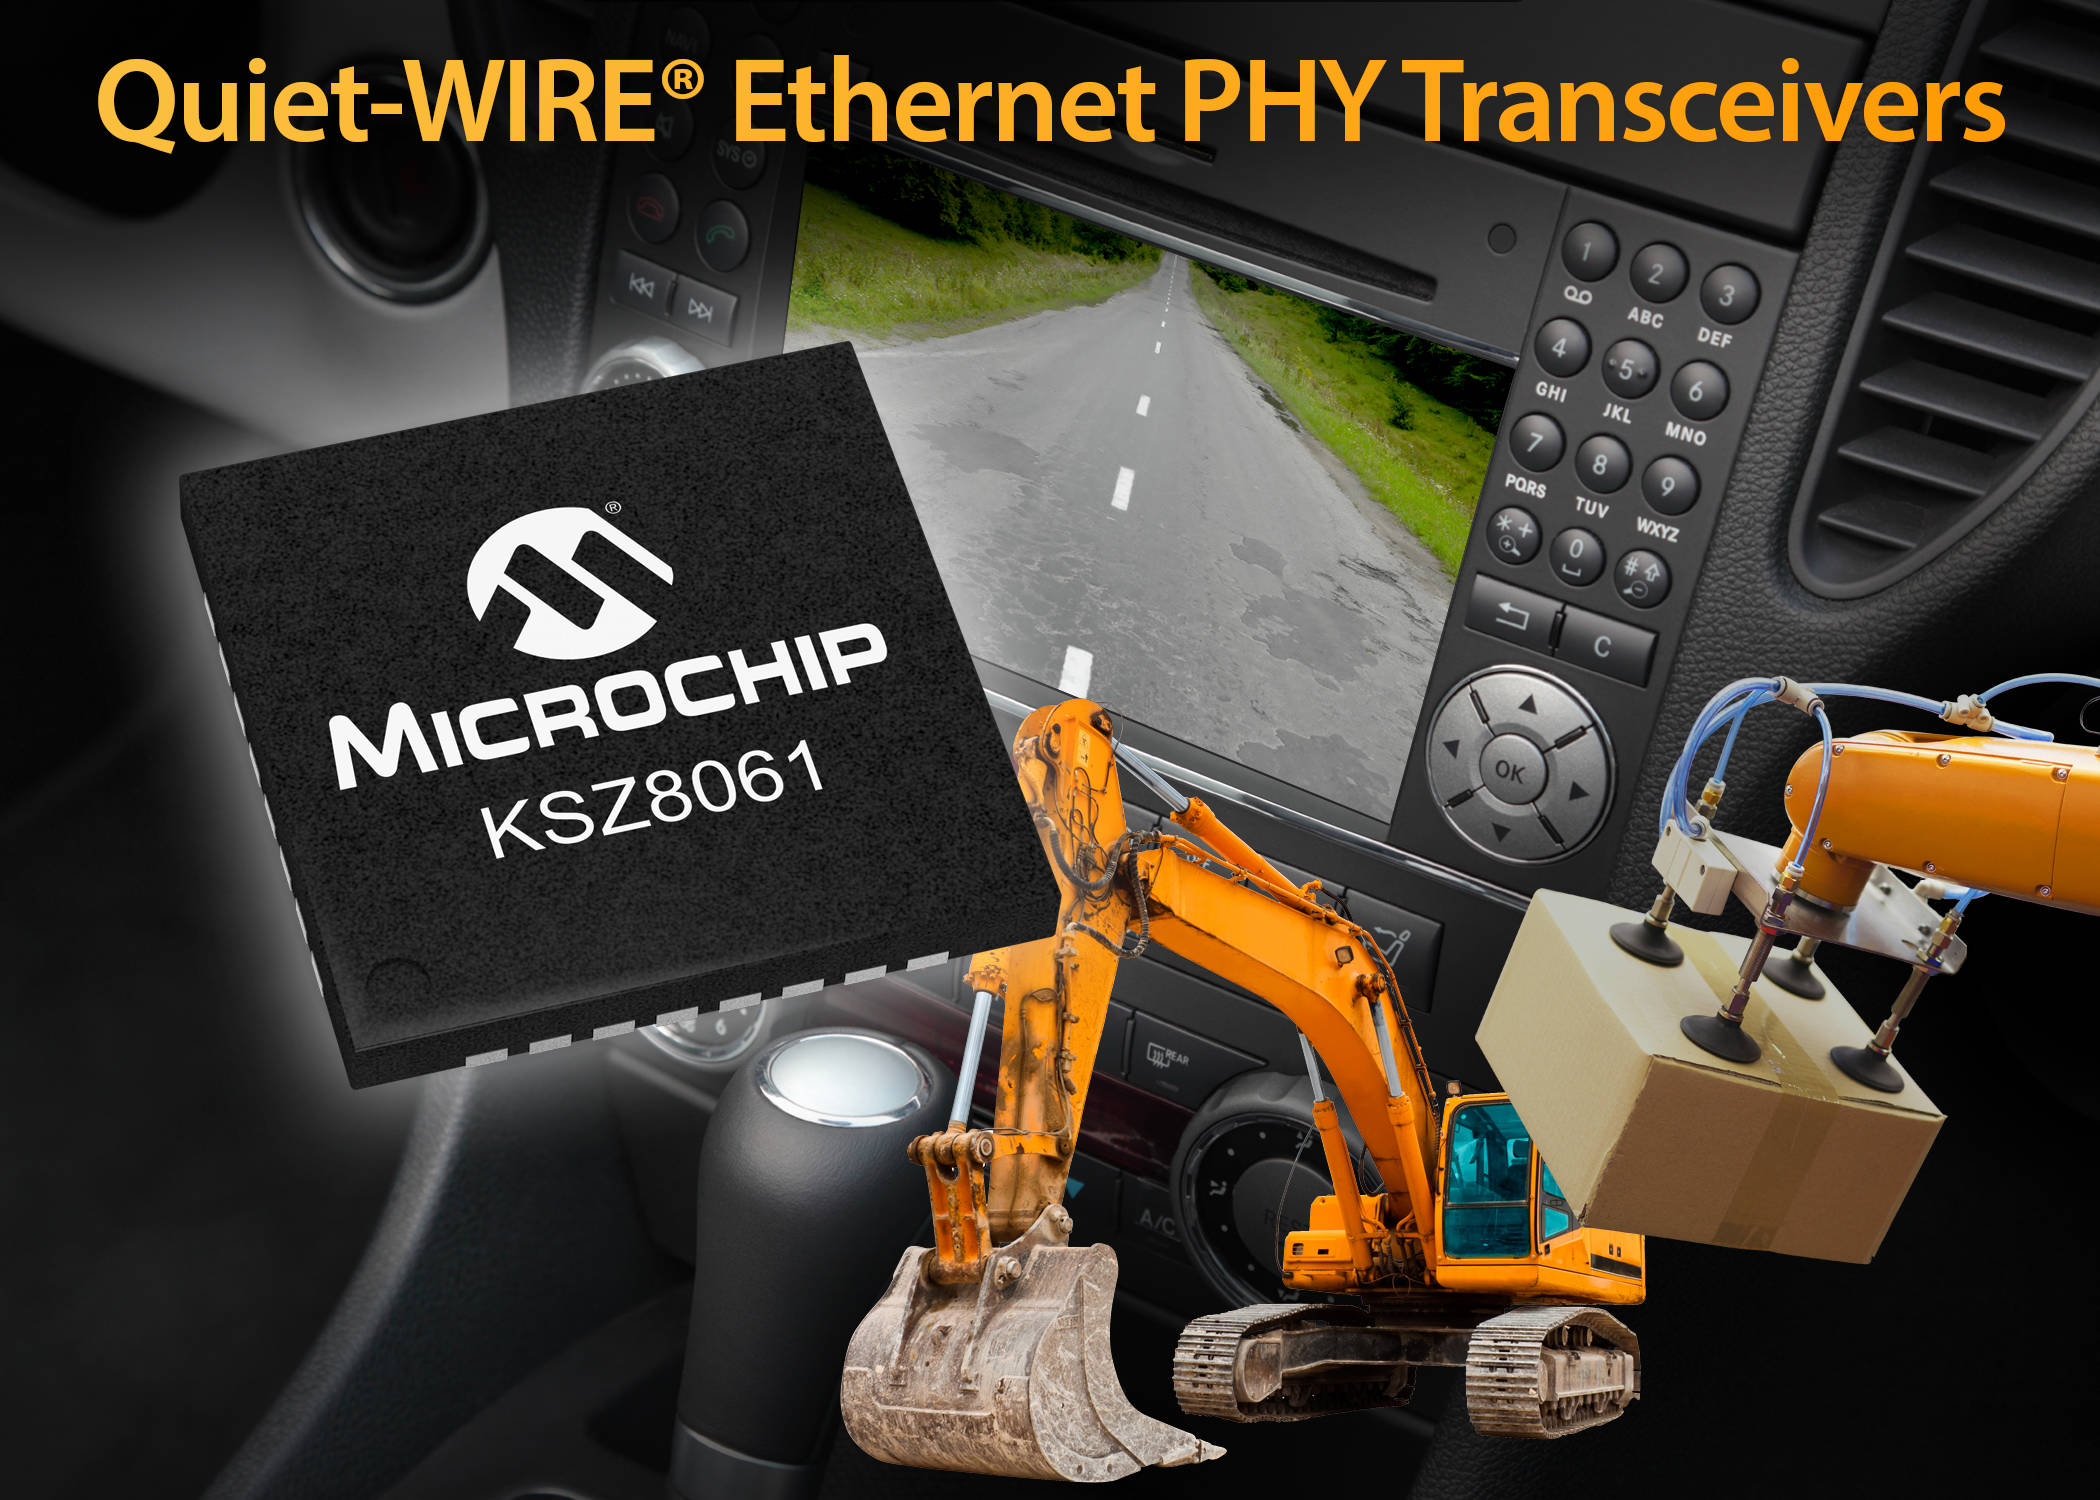 Microchip Ethernet Phy Transceiver Enables Unshielded Twisted Pair Mixed Signal 151030 Ung Pr Ksz8061 7x5